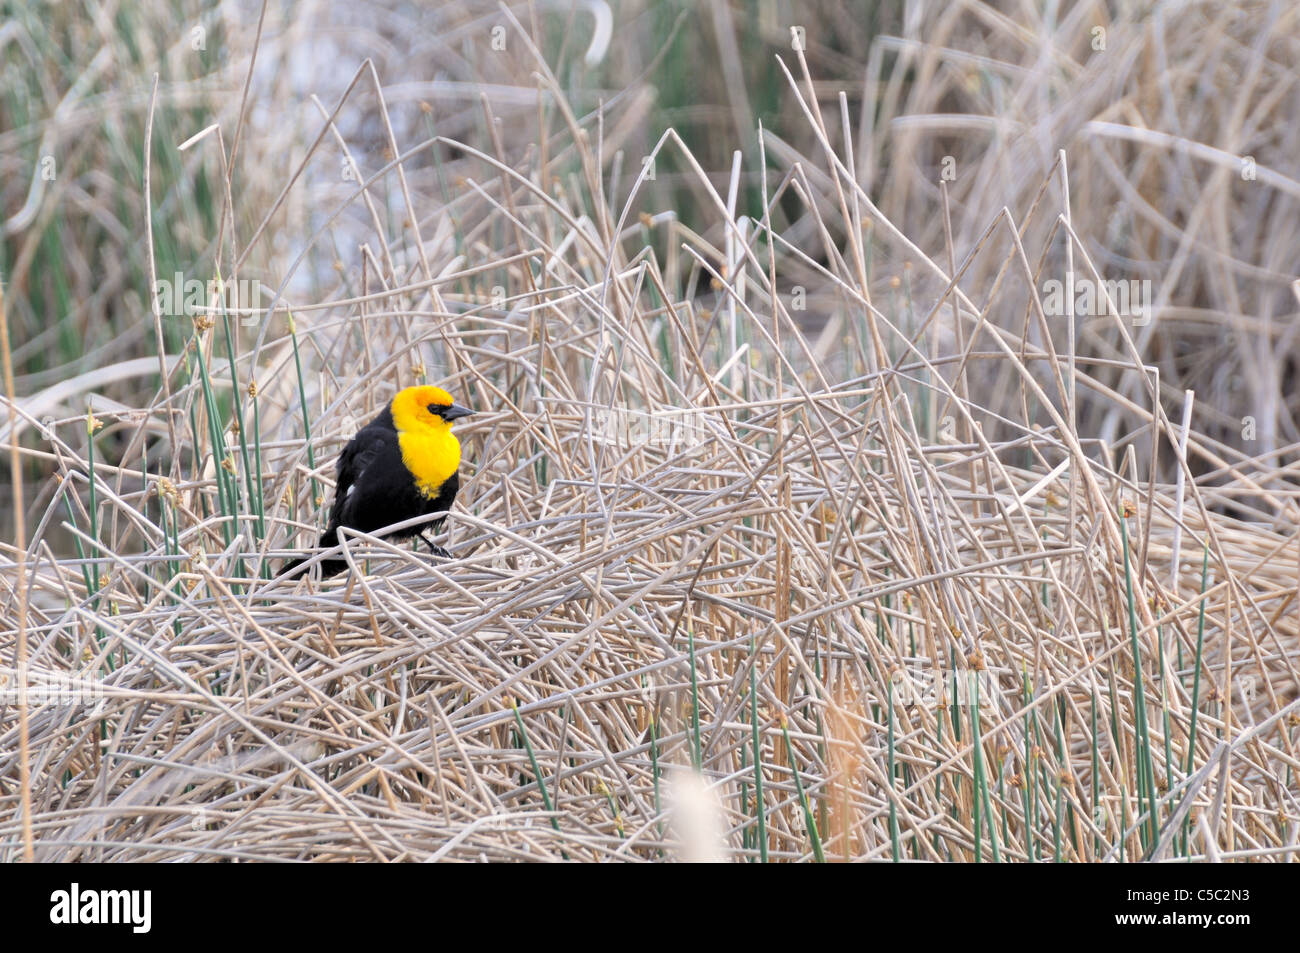 A male yellow headed blackbird sits amongst reeds looking for a mate. Stock Photo